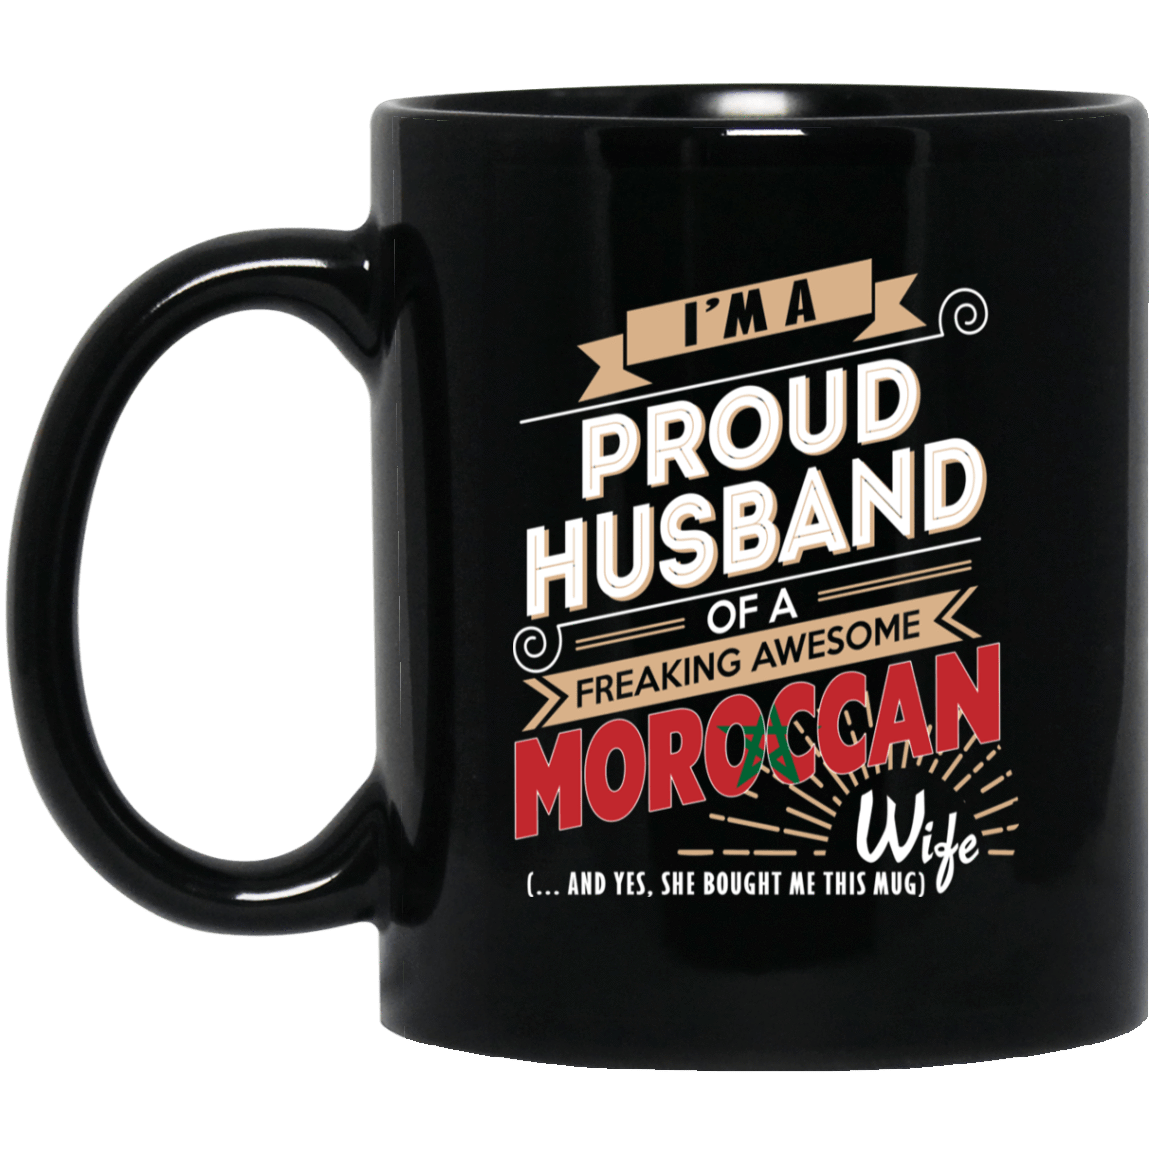 Proud Husband Of A Freaking Awesome Moroccan Wife Mug 1065-10181-72136513-49307 - Tee Ript